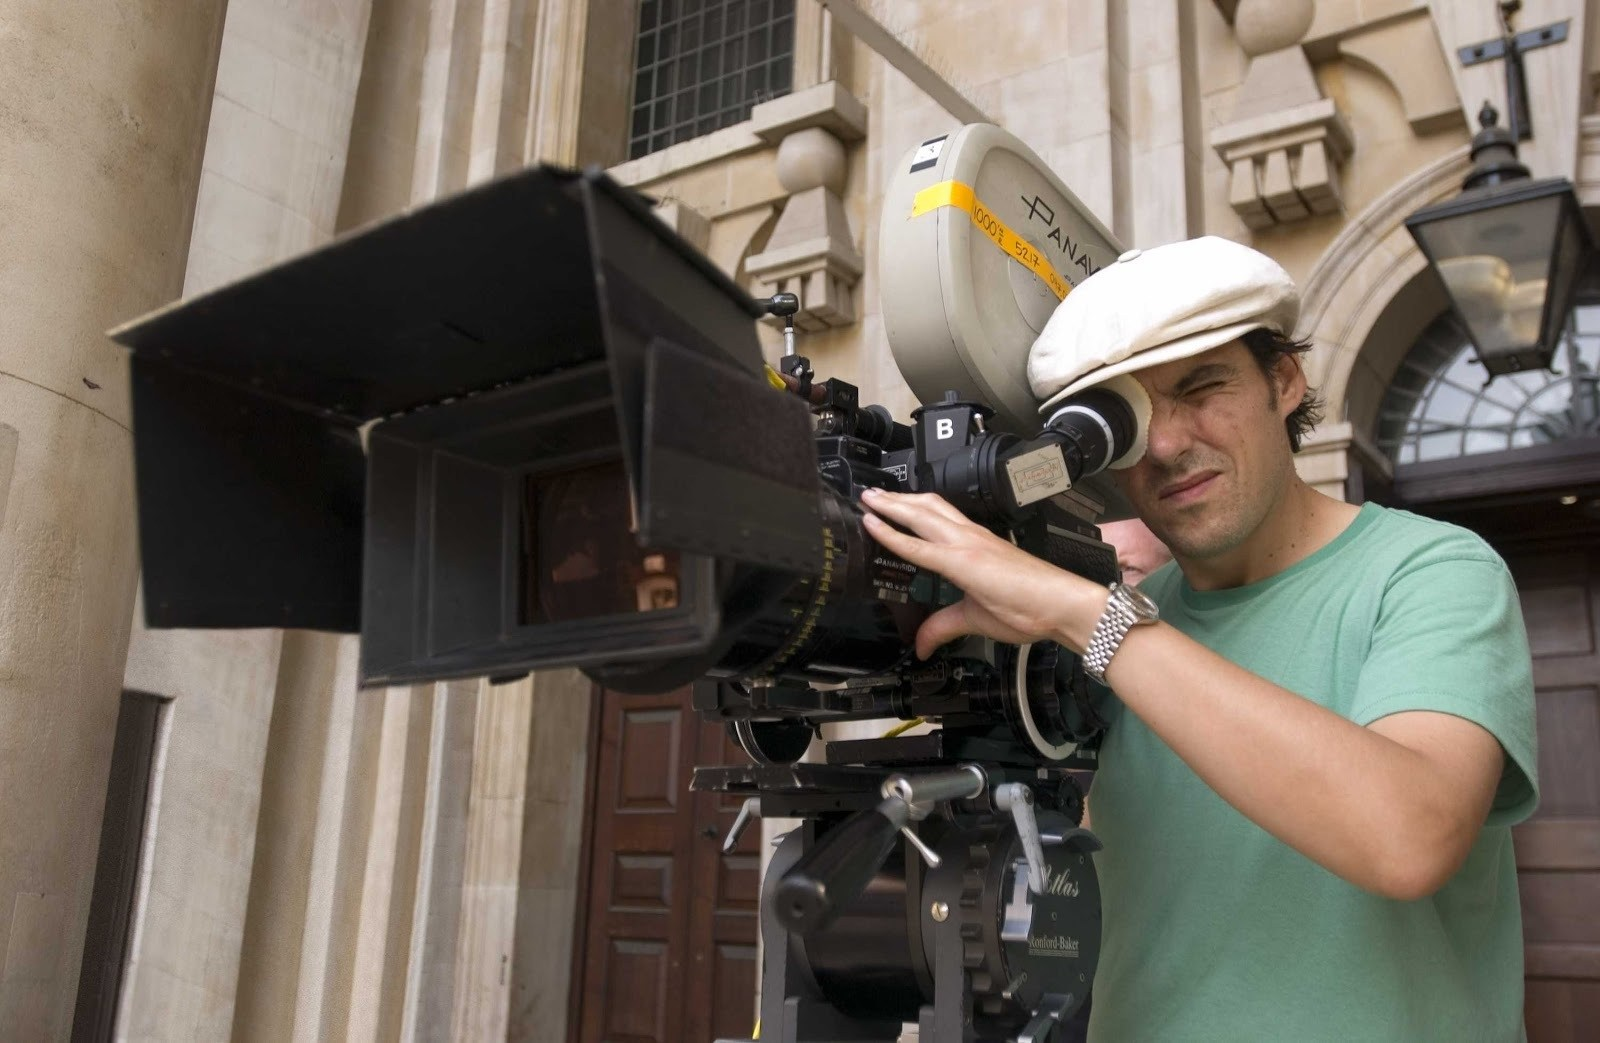 Joe Wright : Atonement (2007) Behind the Scenes